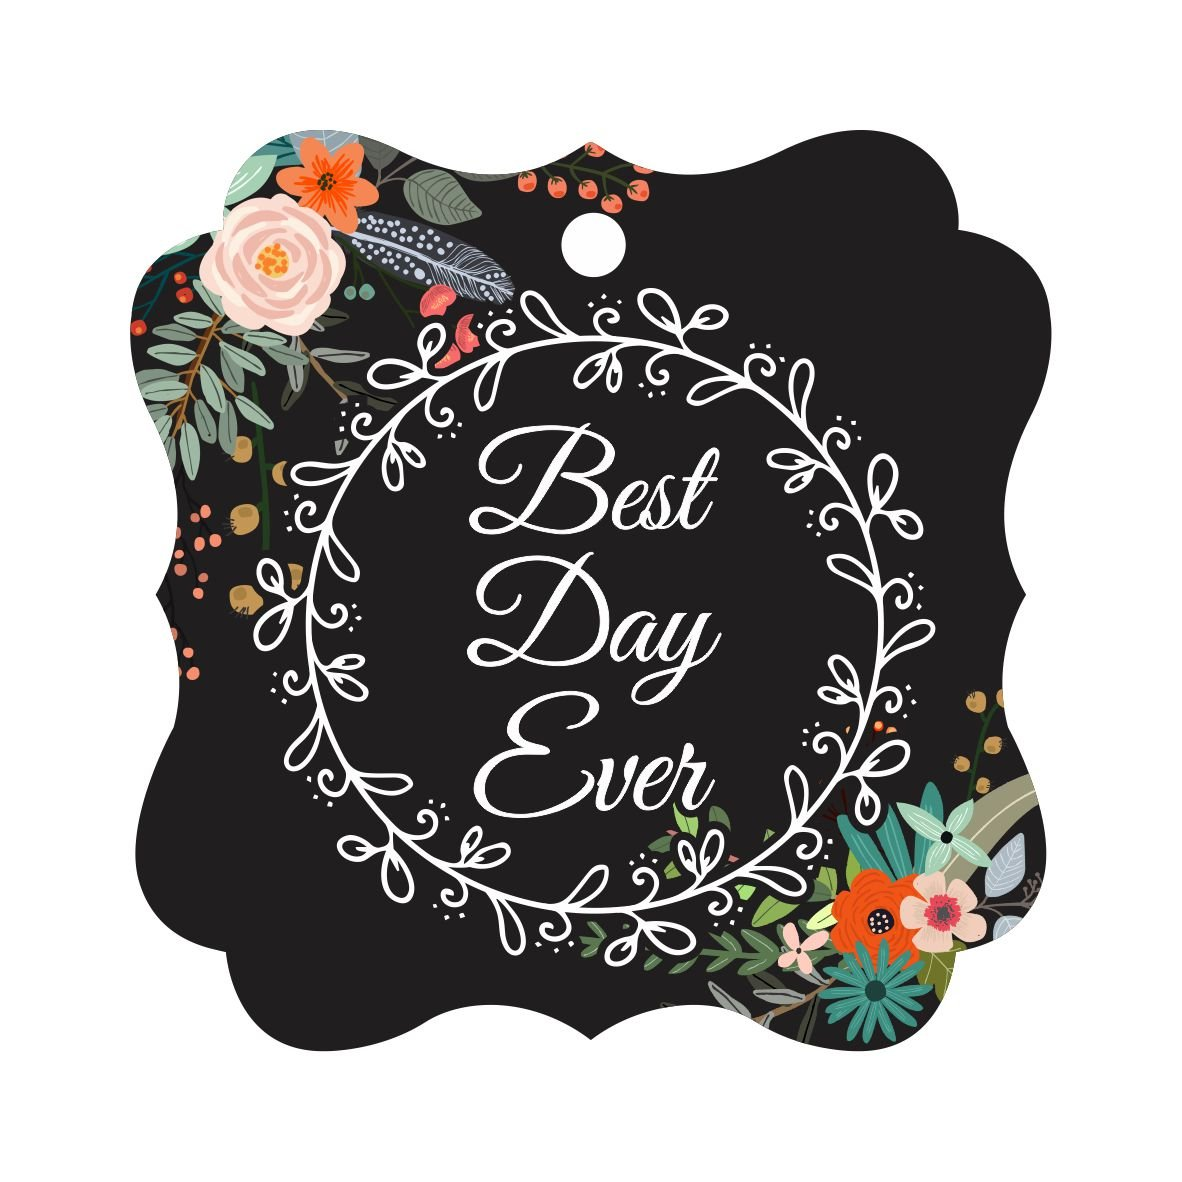 Darling Souvenir Custom Best Day Ever Wedding Party Tags Leaf Wreath Hang Tags-Floral Black-50 Tags